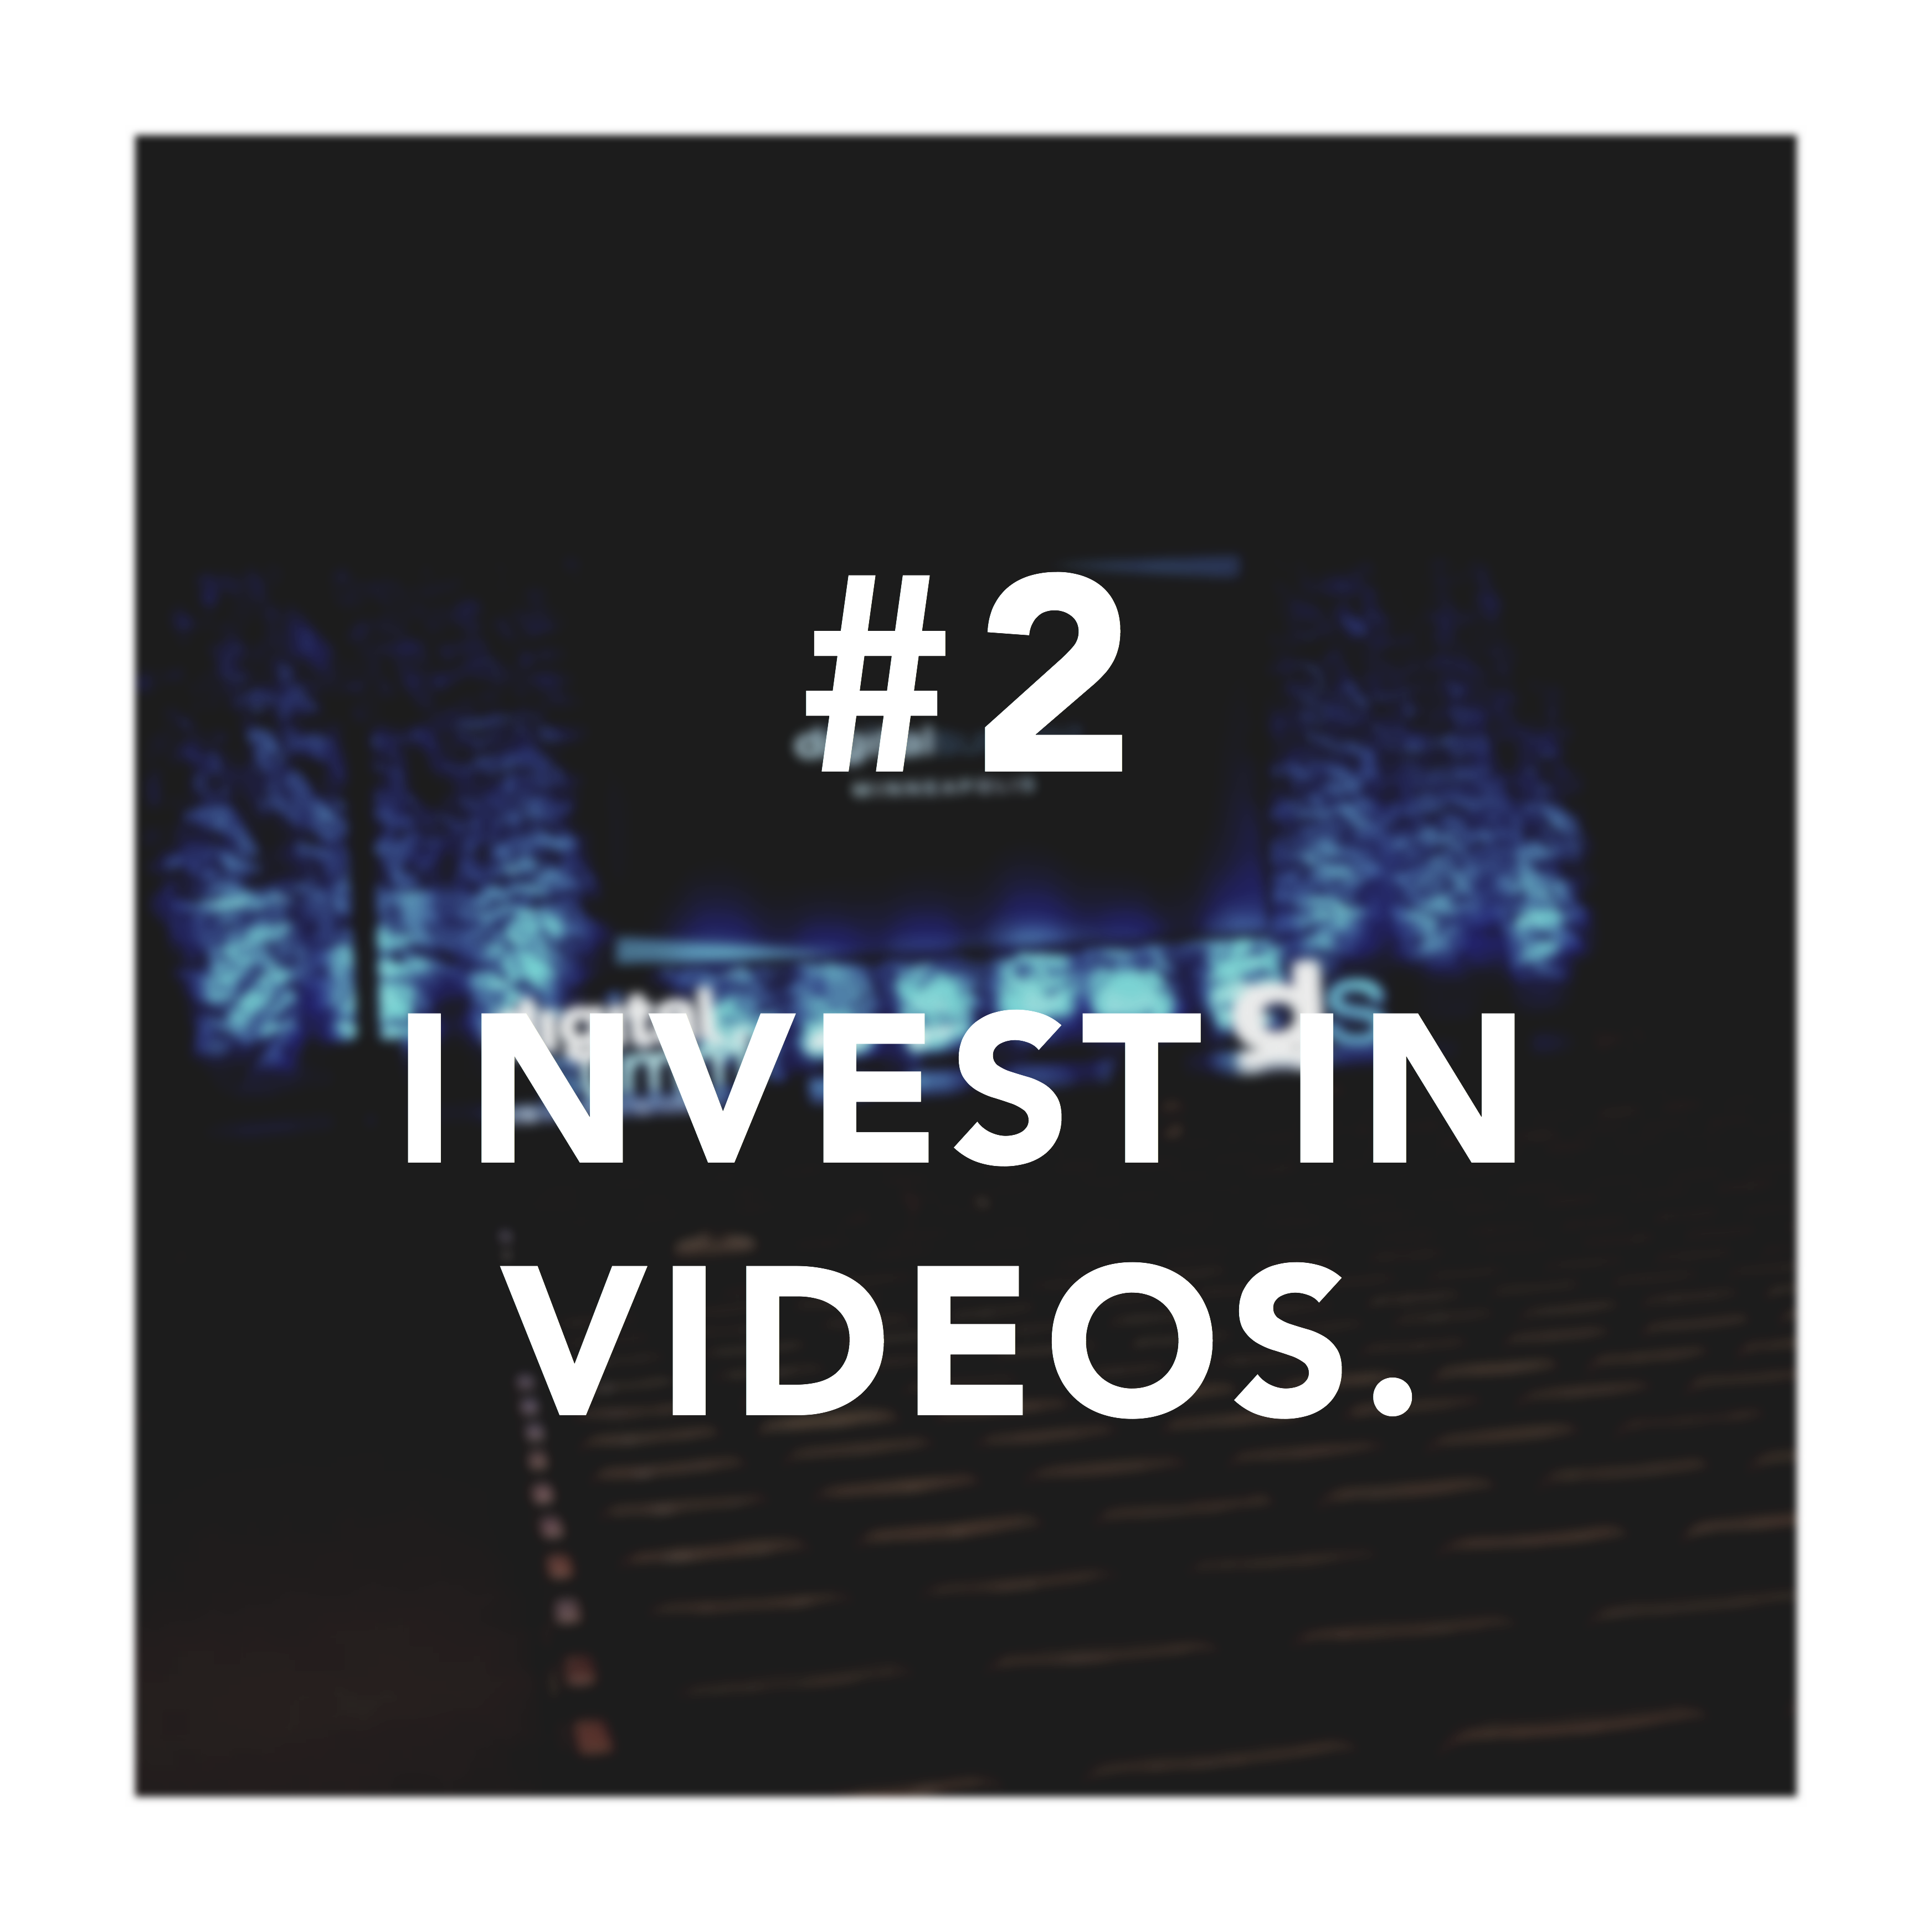 "Second takeaway for digital summit countdown with ""Invest in Videos"" text"